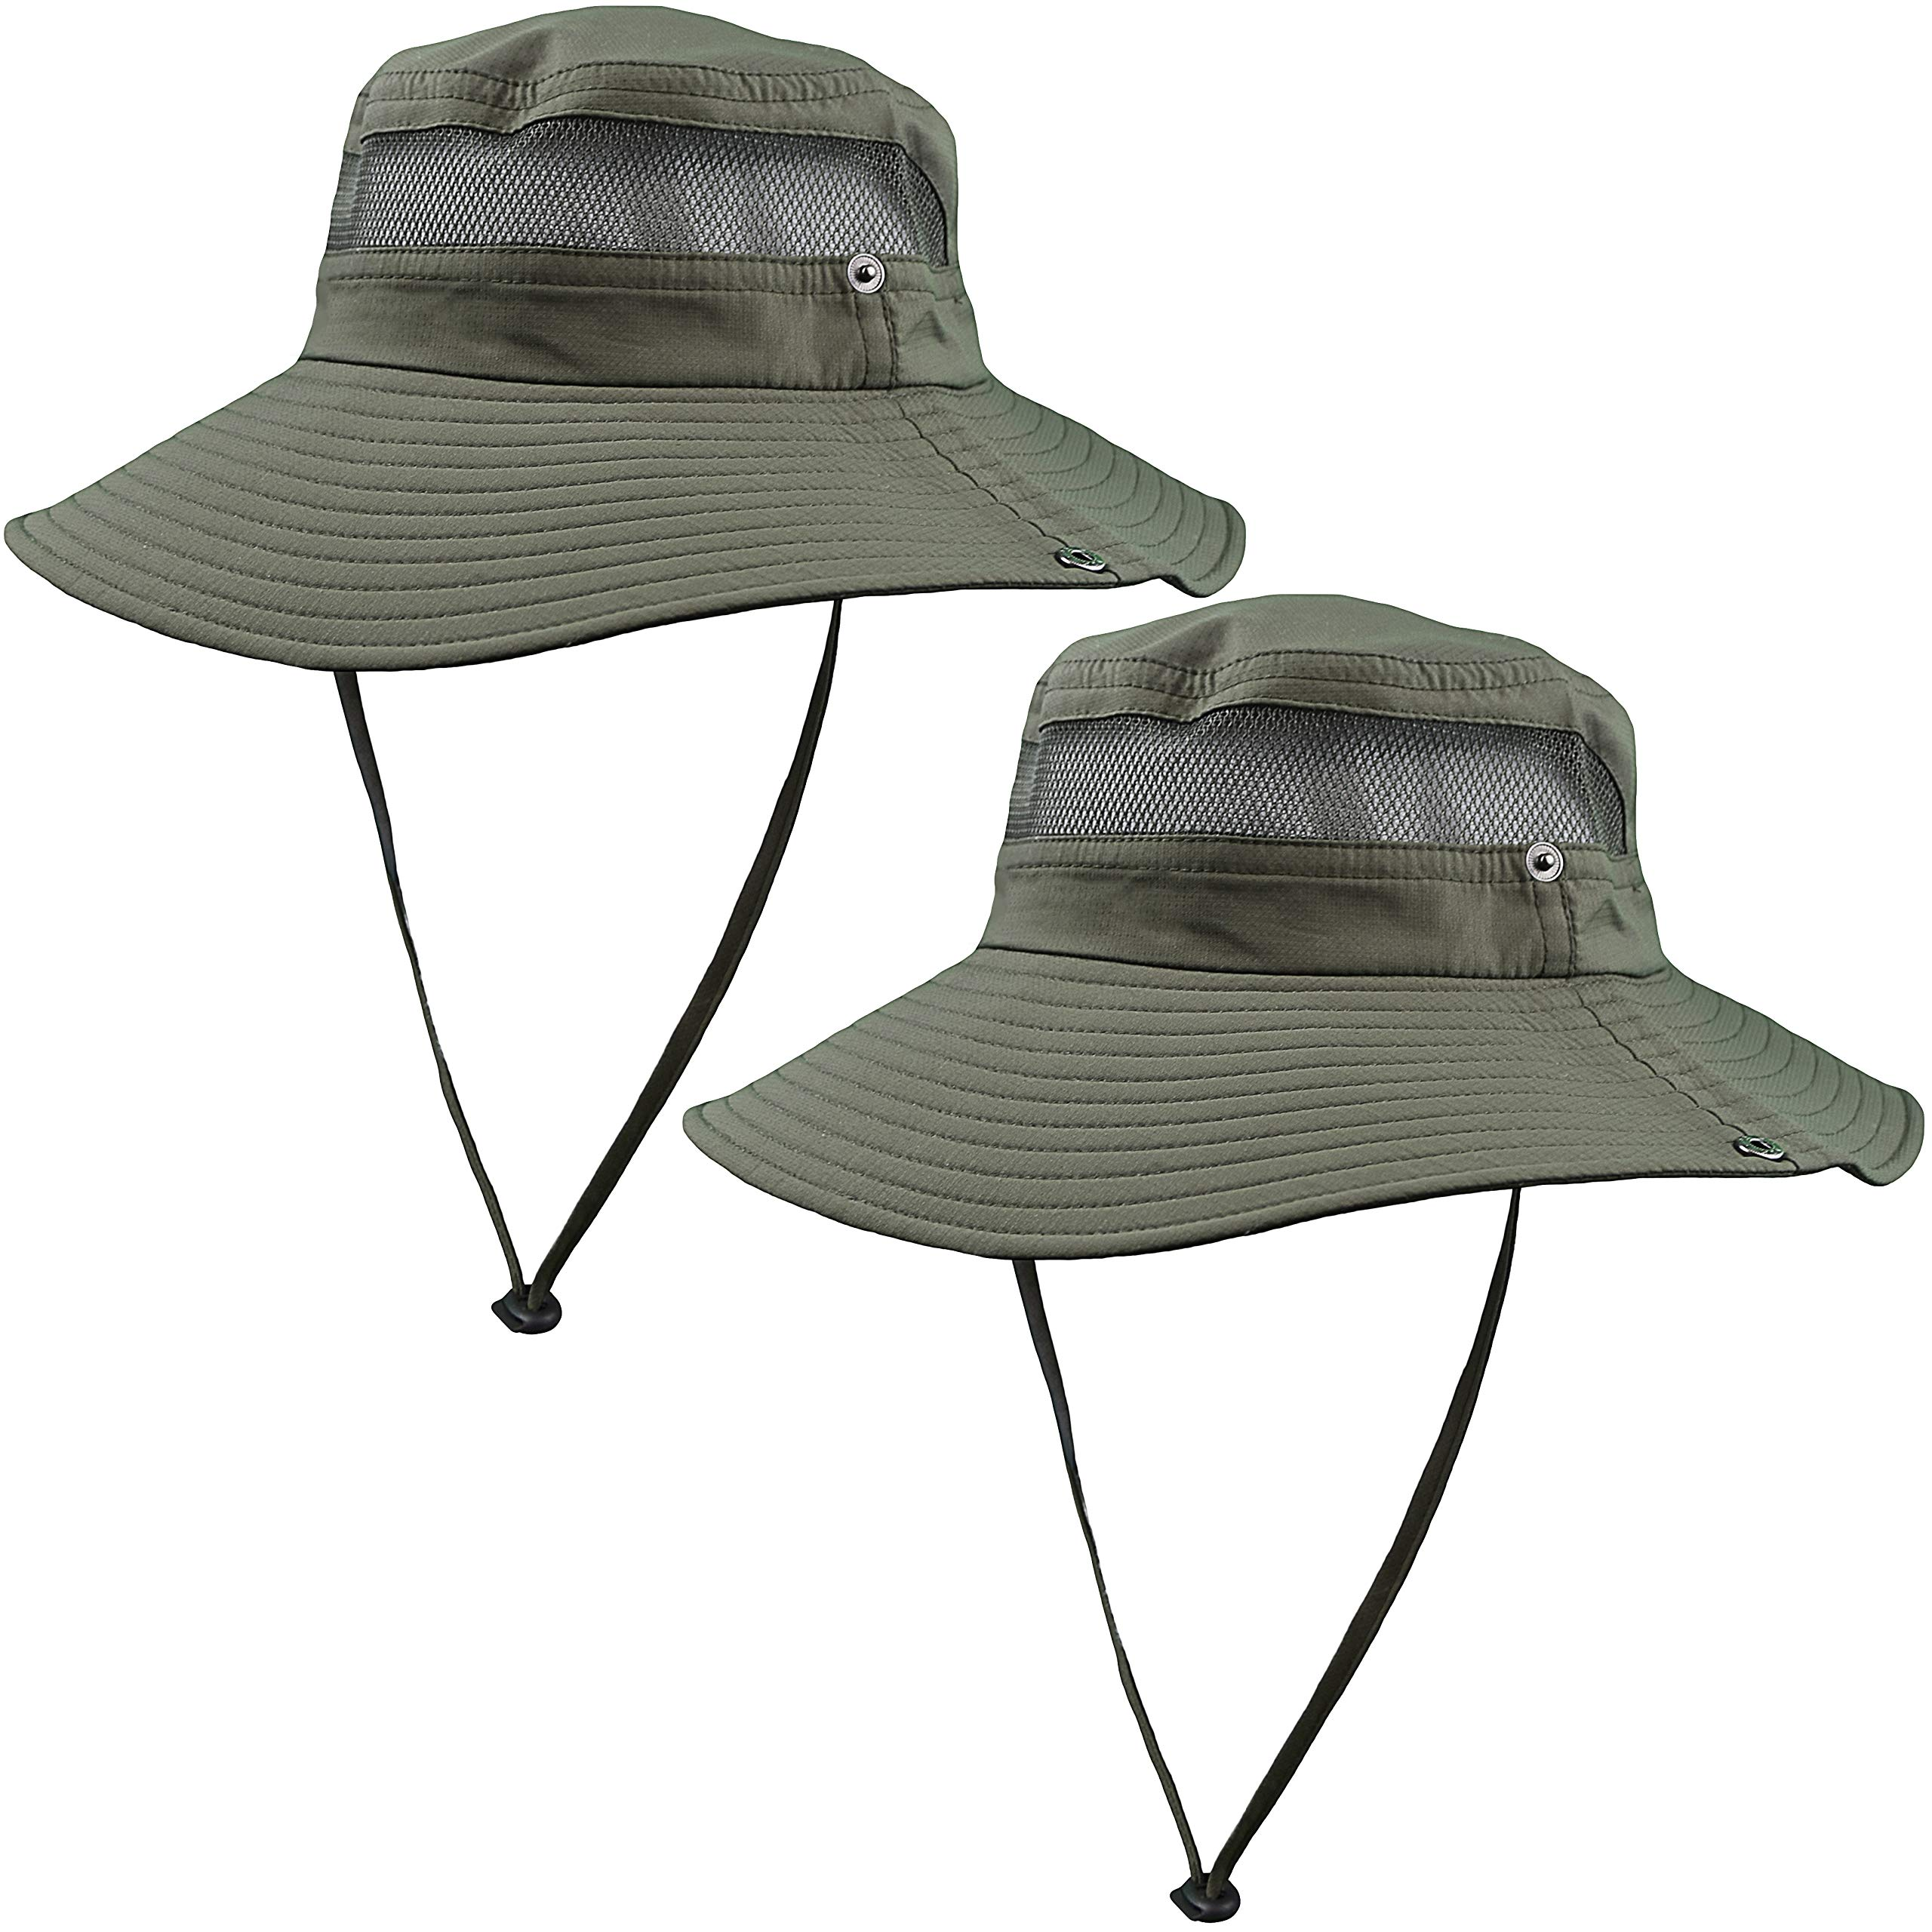 GearTOP Fishing Hat and Safari Cap with Sun Protection | Premium Hats for Men and Women (Army Green - 2 Pack) by GearTOP (Image #1)